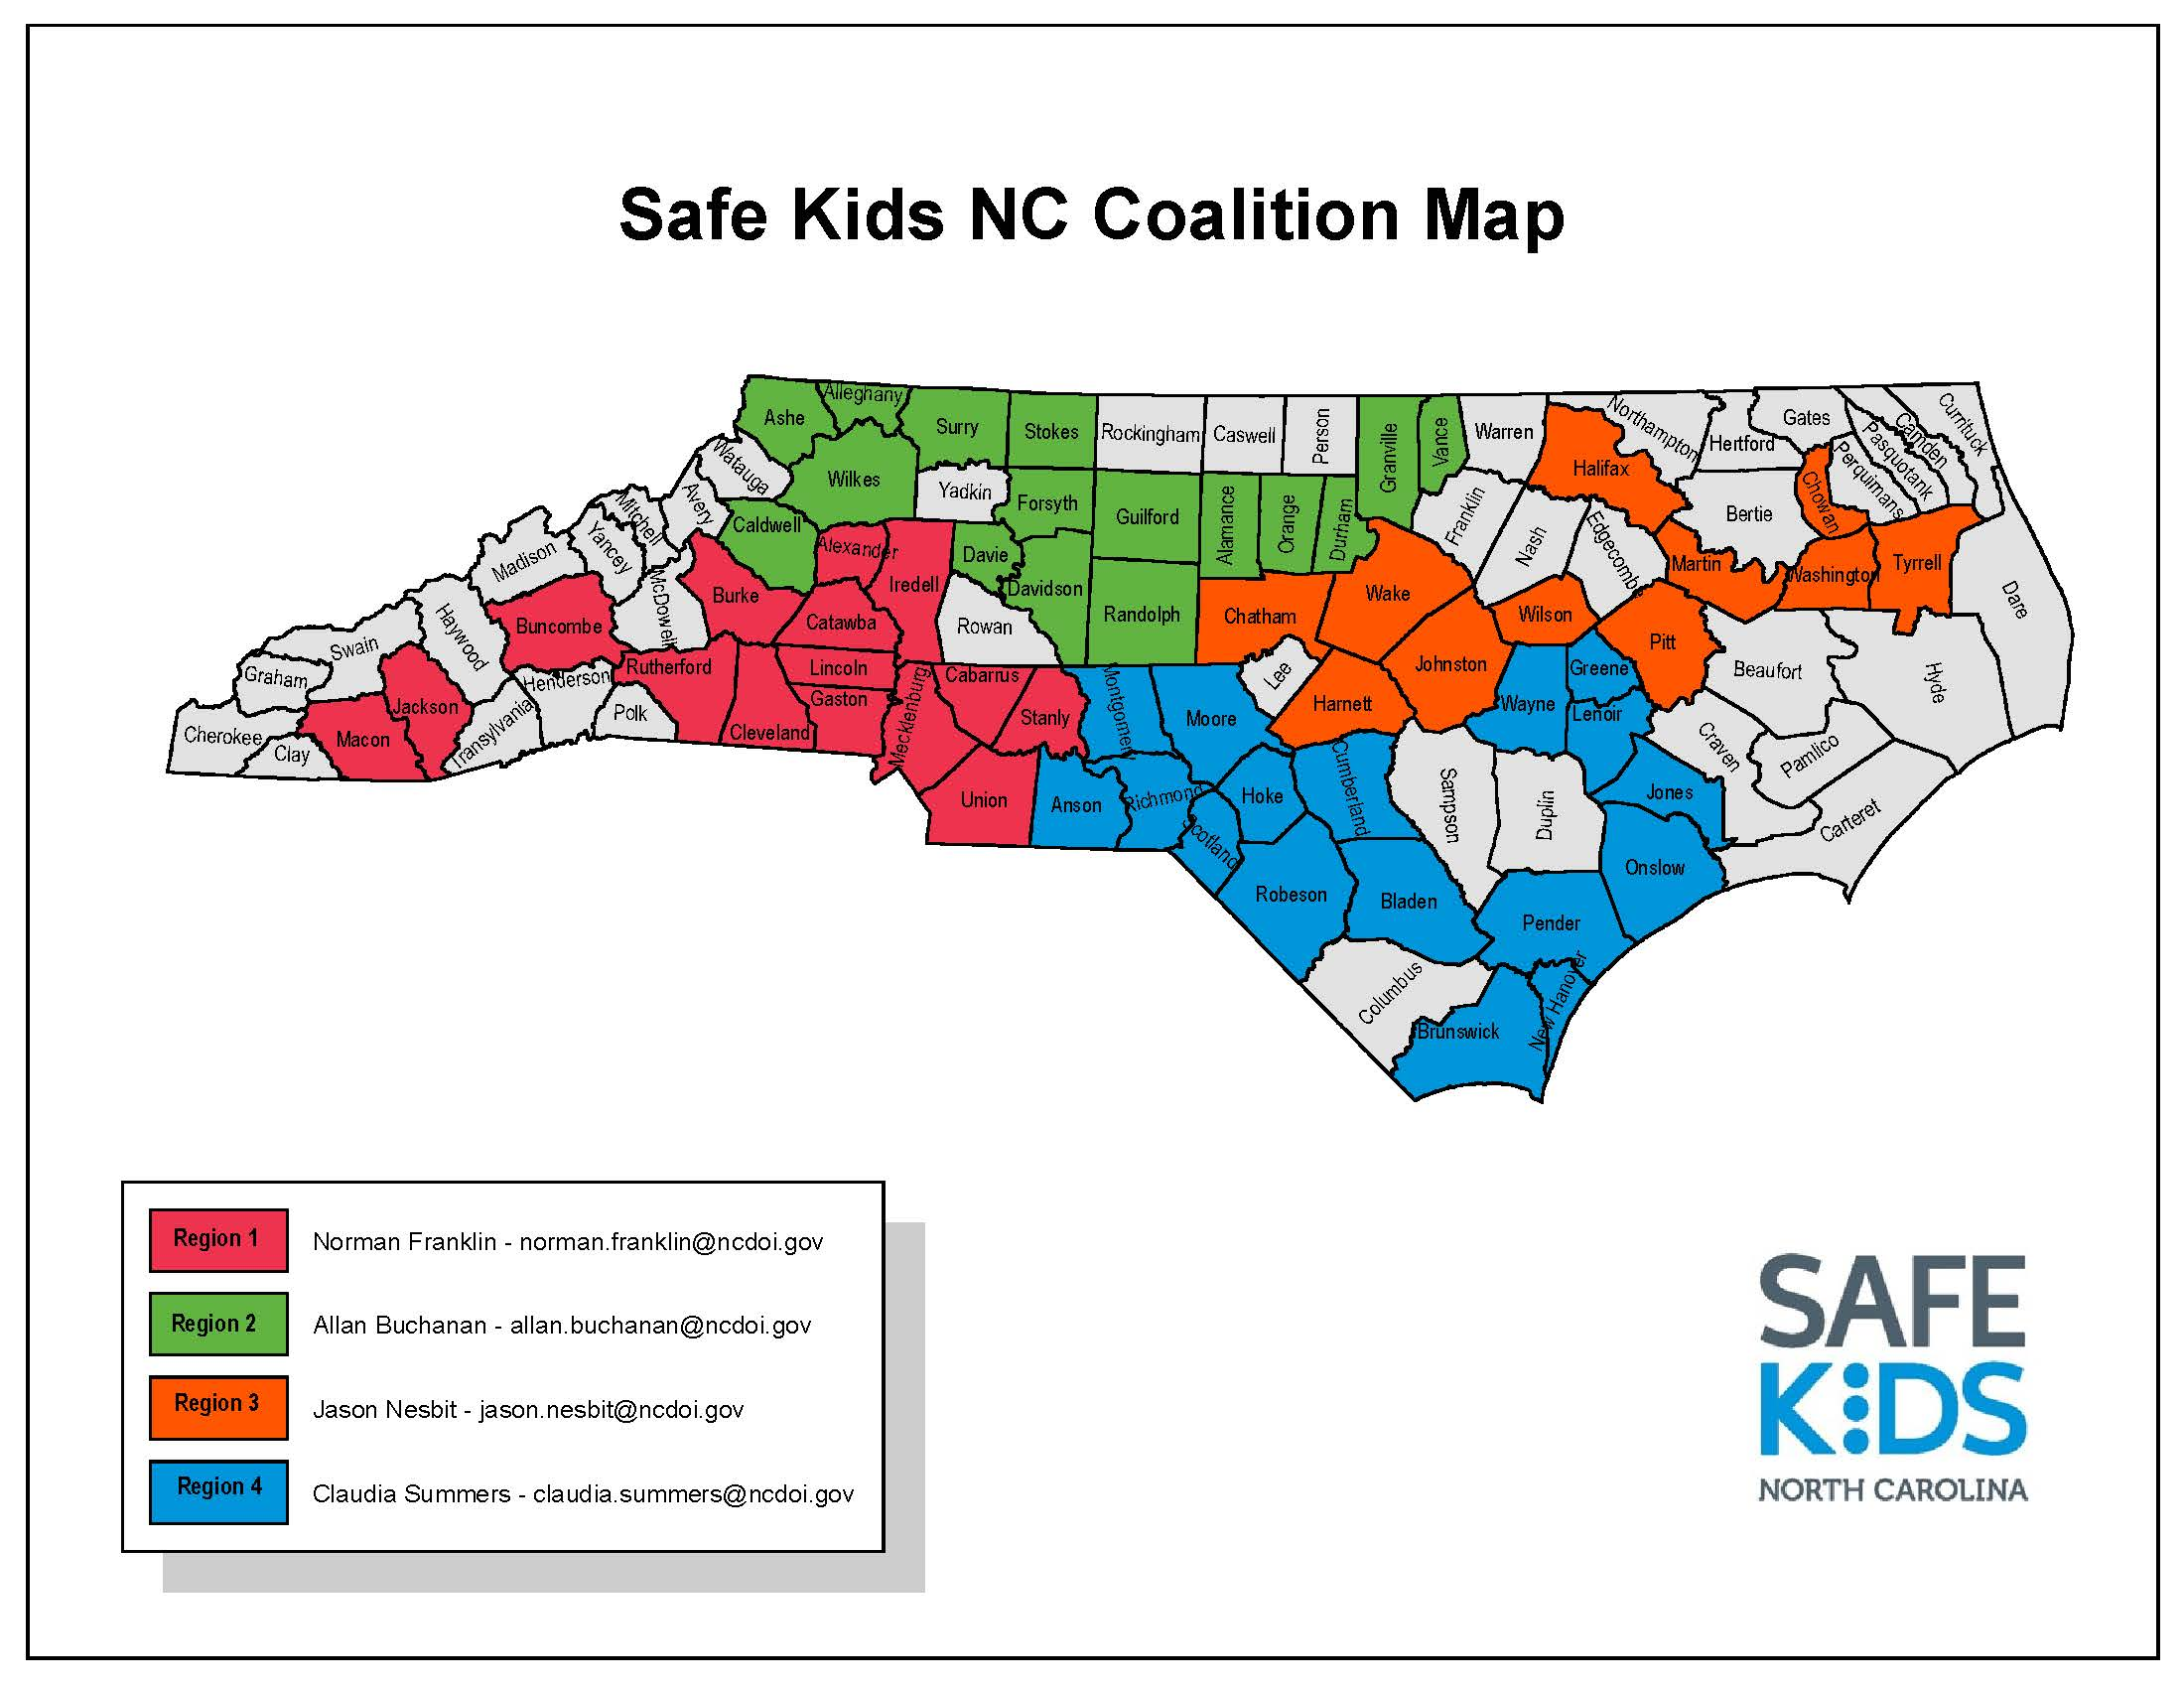 Safe Kids NC Coalition Map